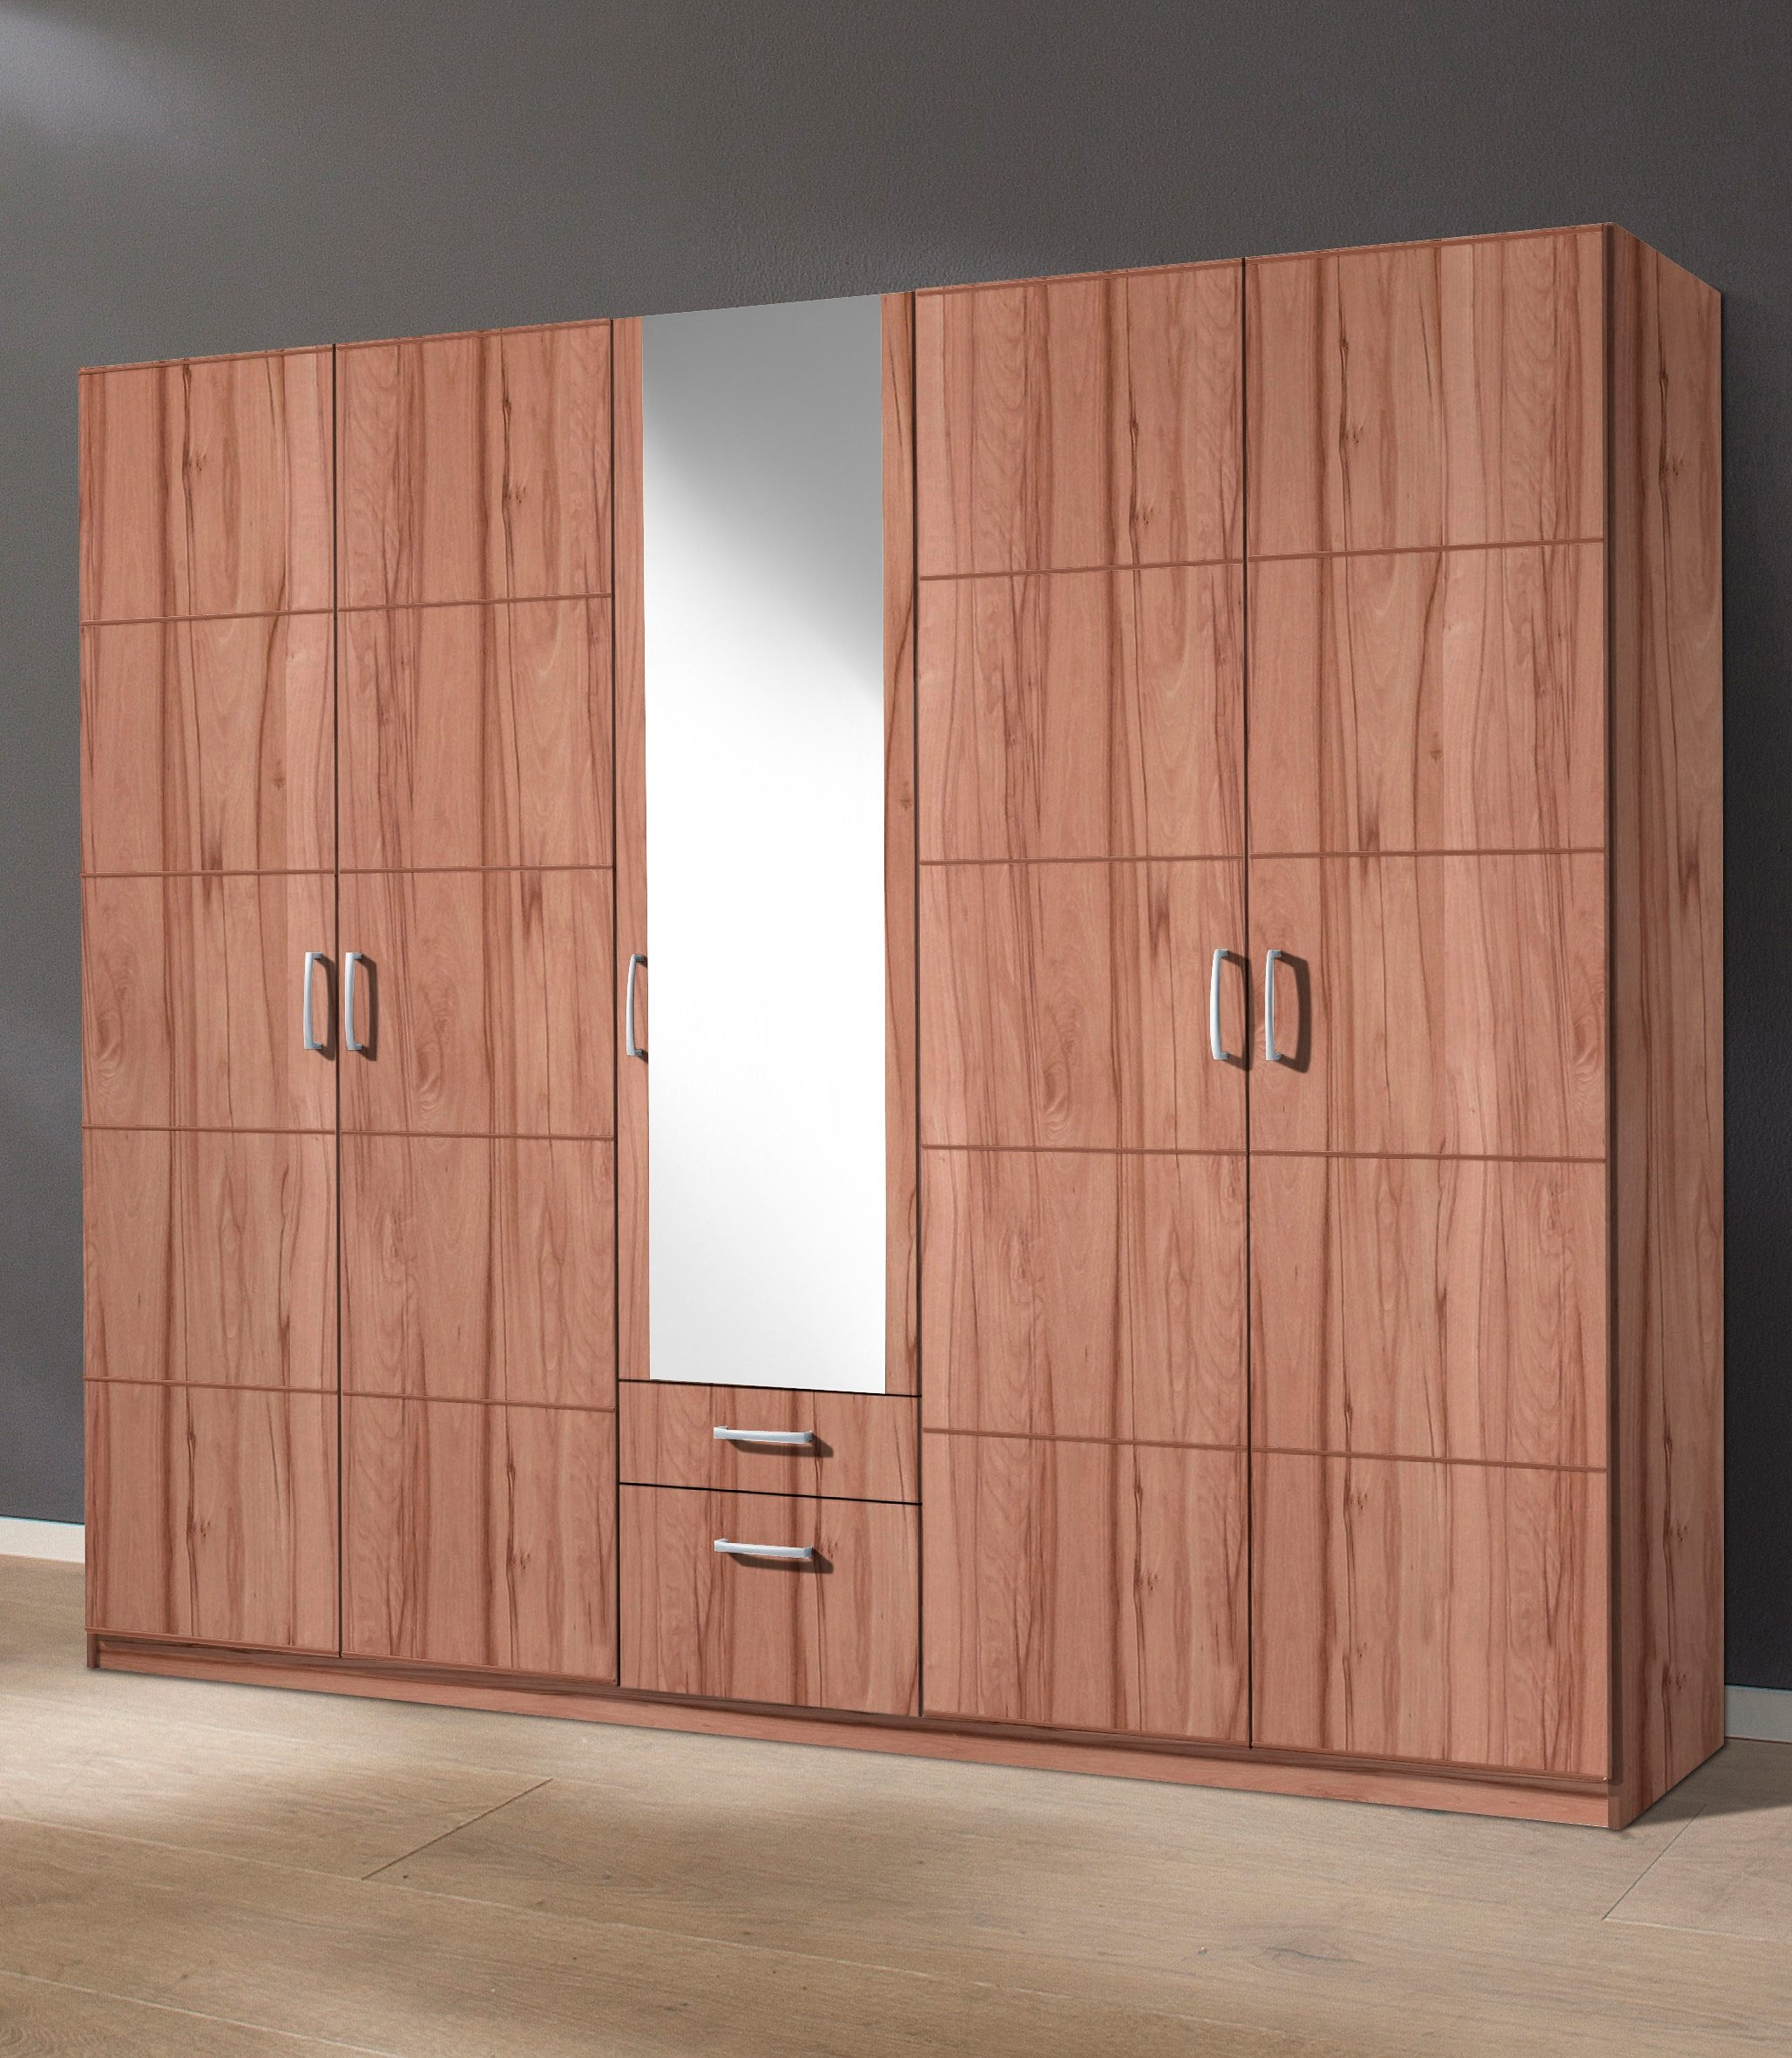 kleiderschrank bilbao billiger bei. Black Bedroom Furniture Sets. Home Design Ideas